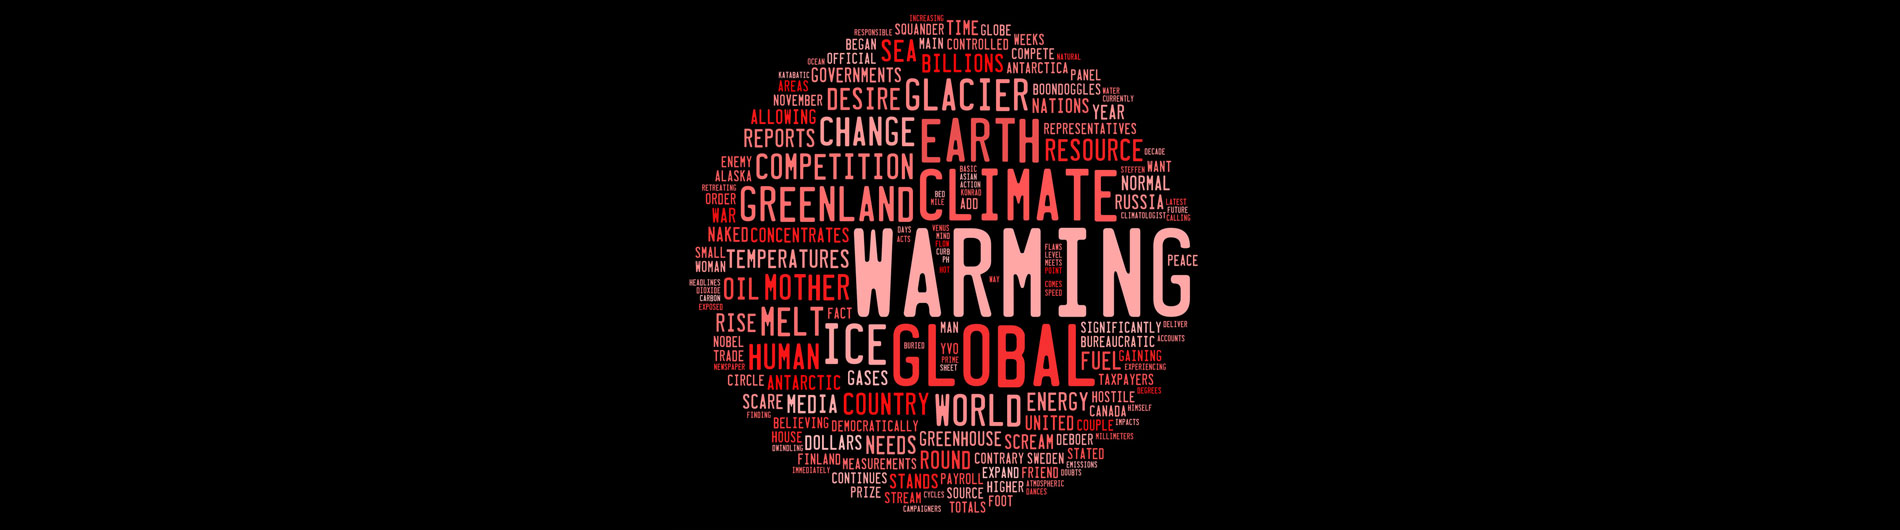 WWIII Climate Wars P1: How 2 per cent global warming will lead to world war